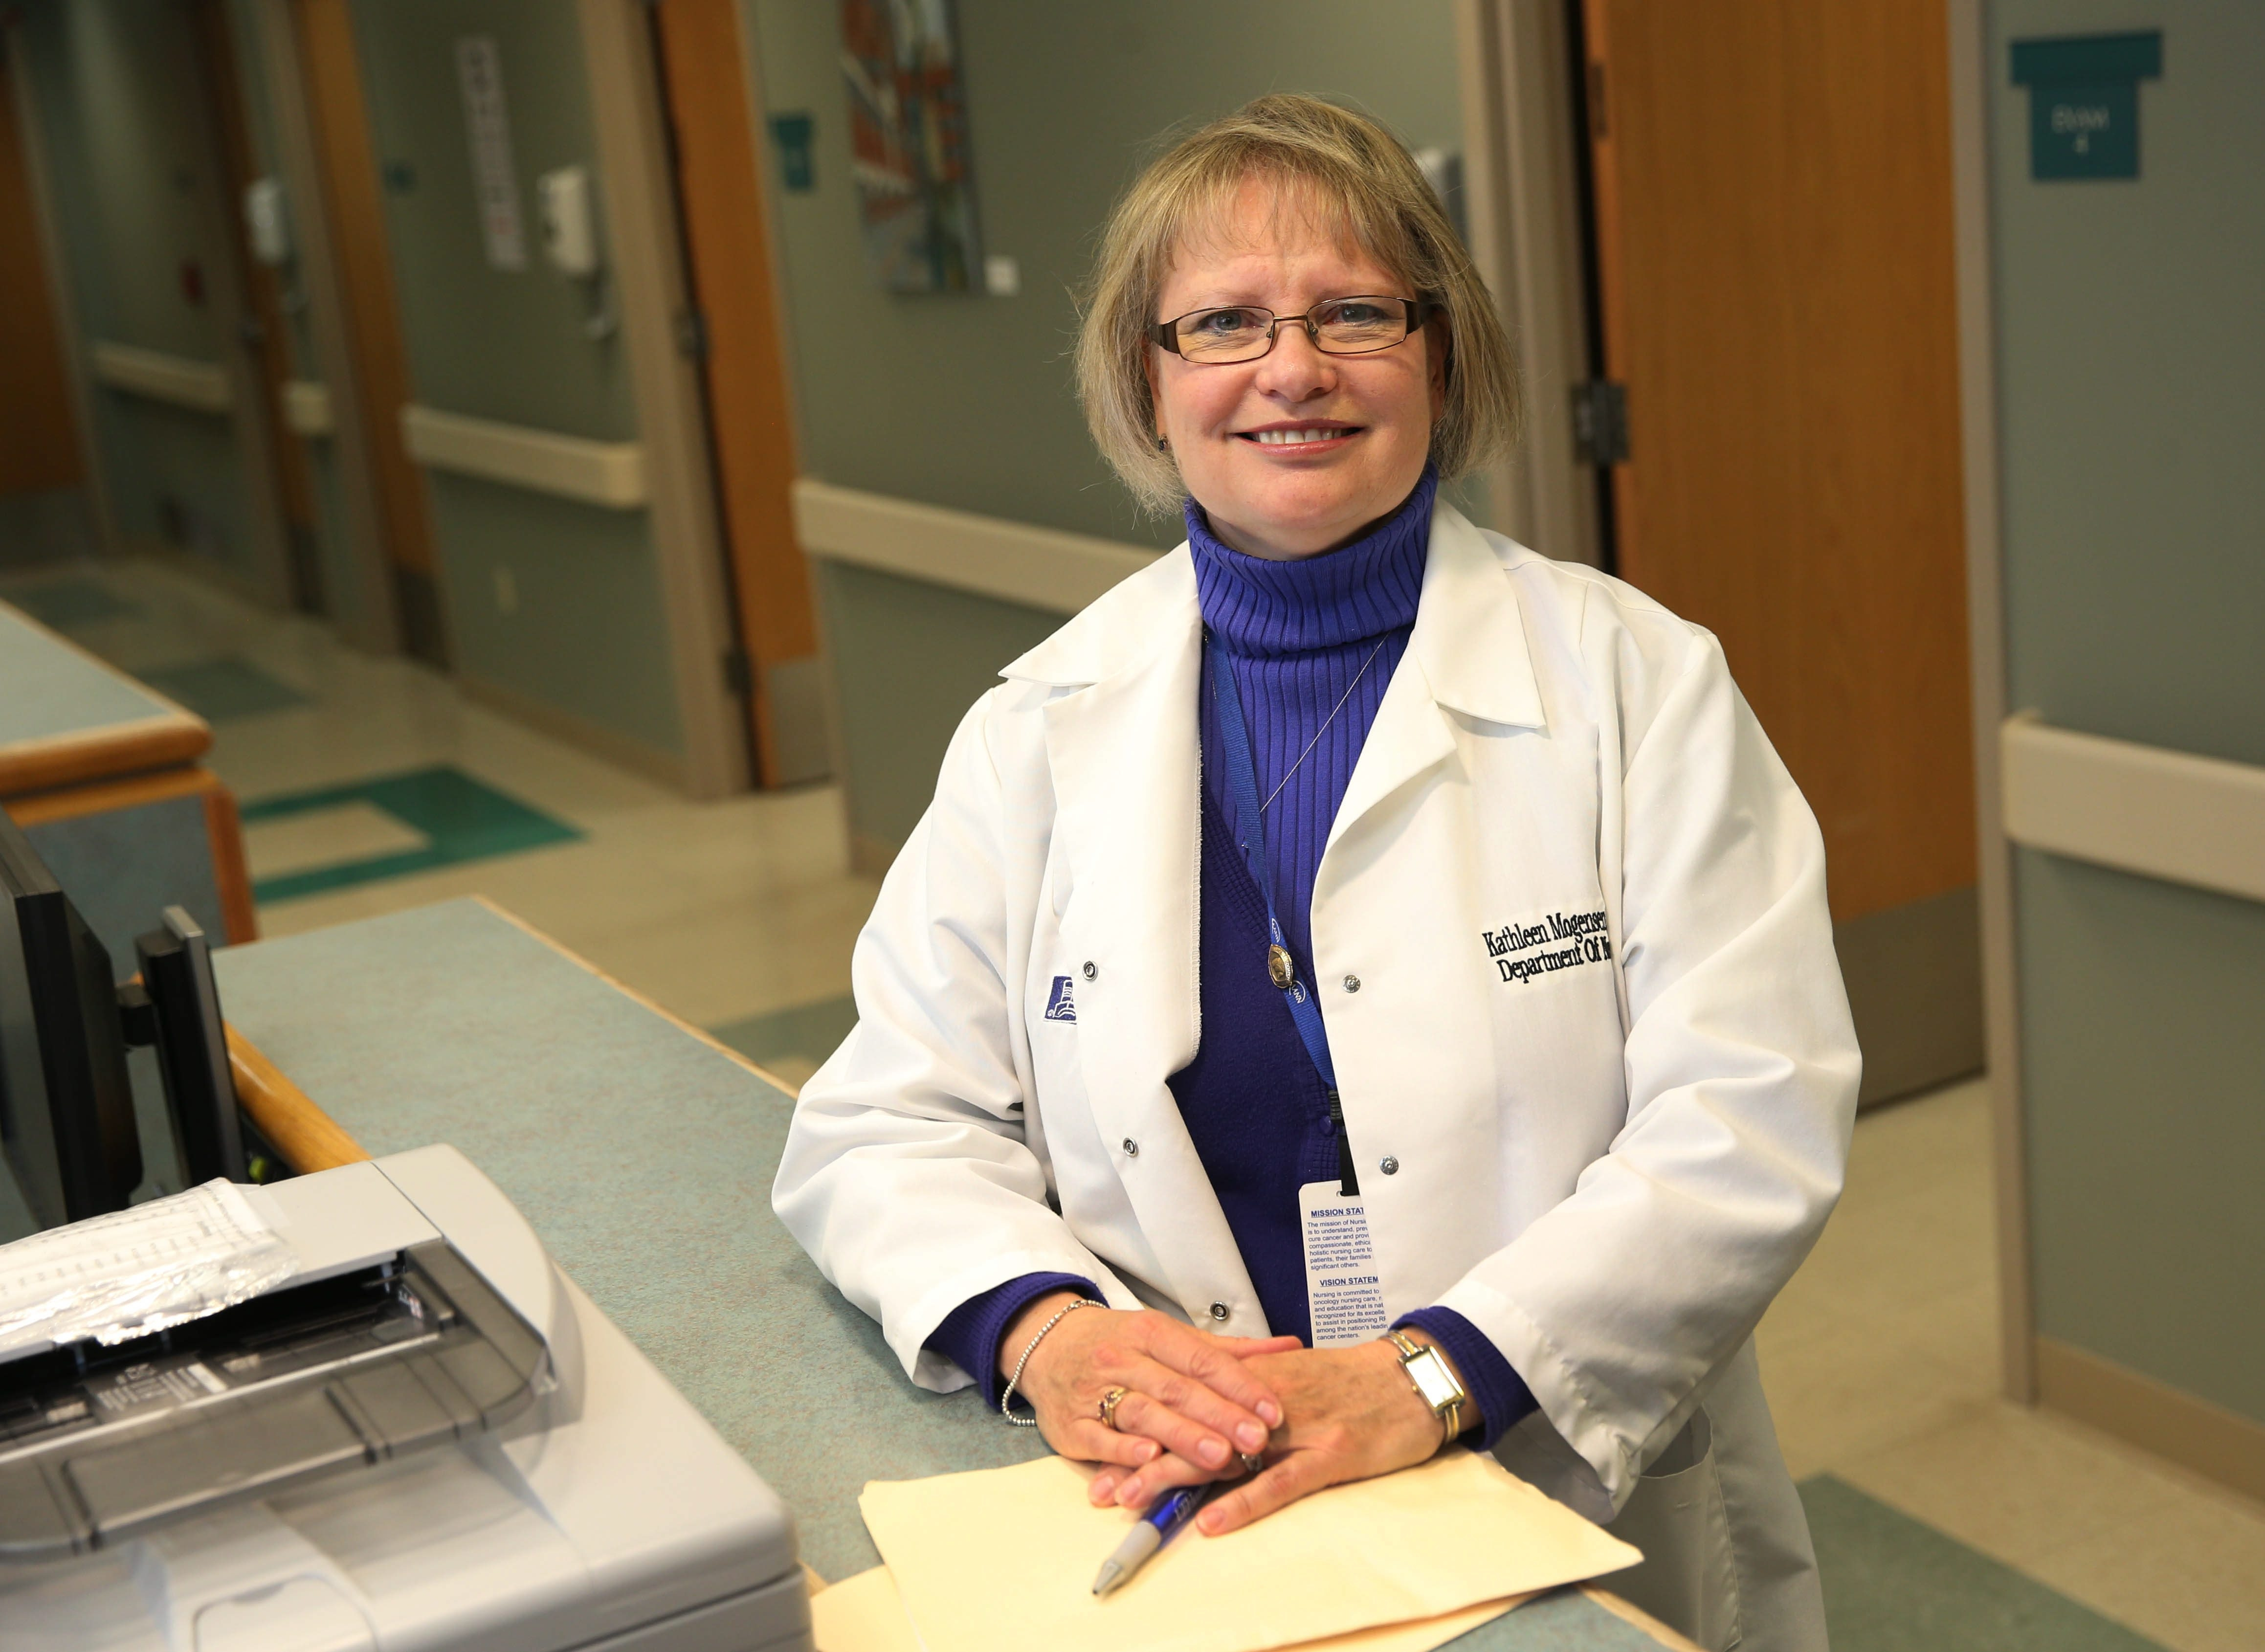 """I think I can make a difference with oncology patients. I like the continuing research in this continually evolving field."" – Kathleen Mogensen, neuro-oncology nurse practitioner at Roswell Park Cancer Institute"